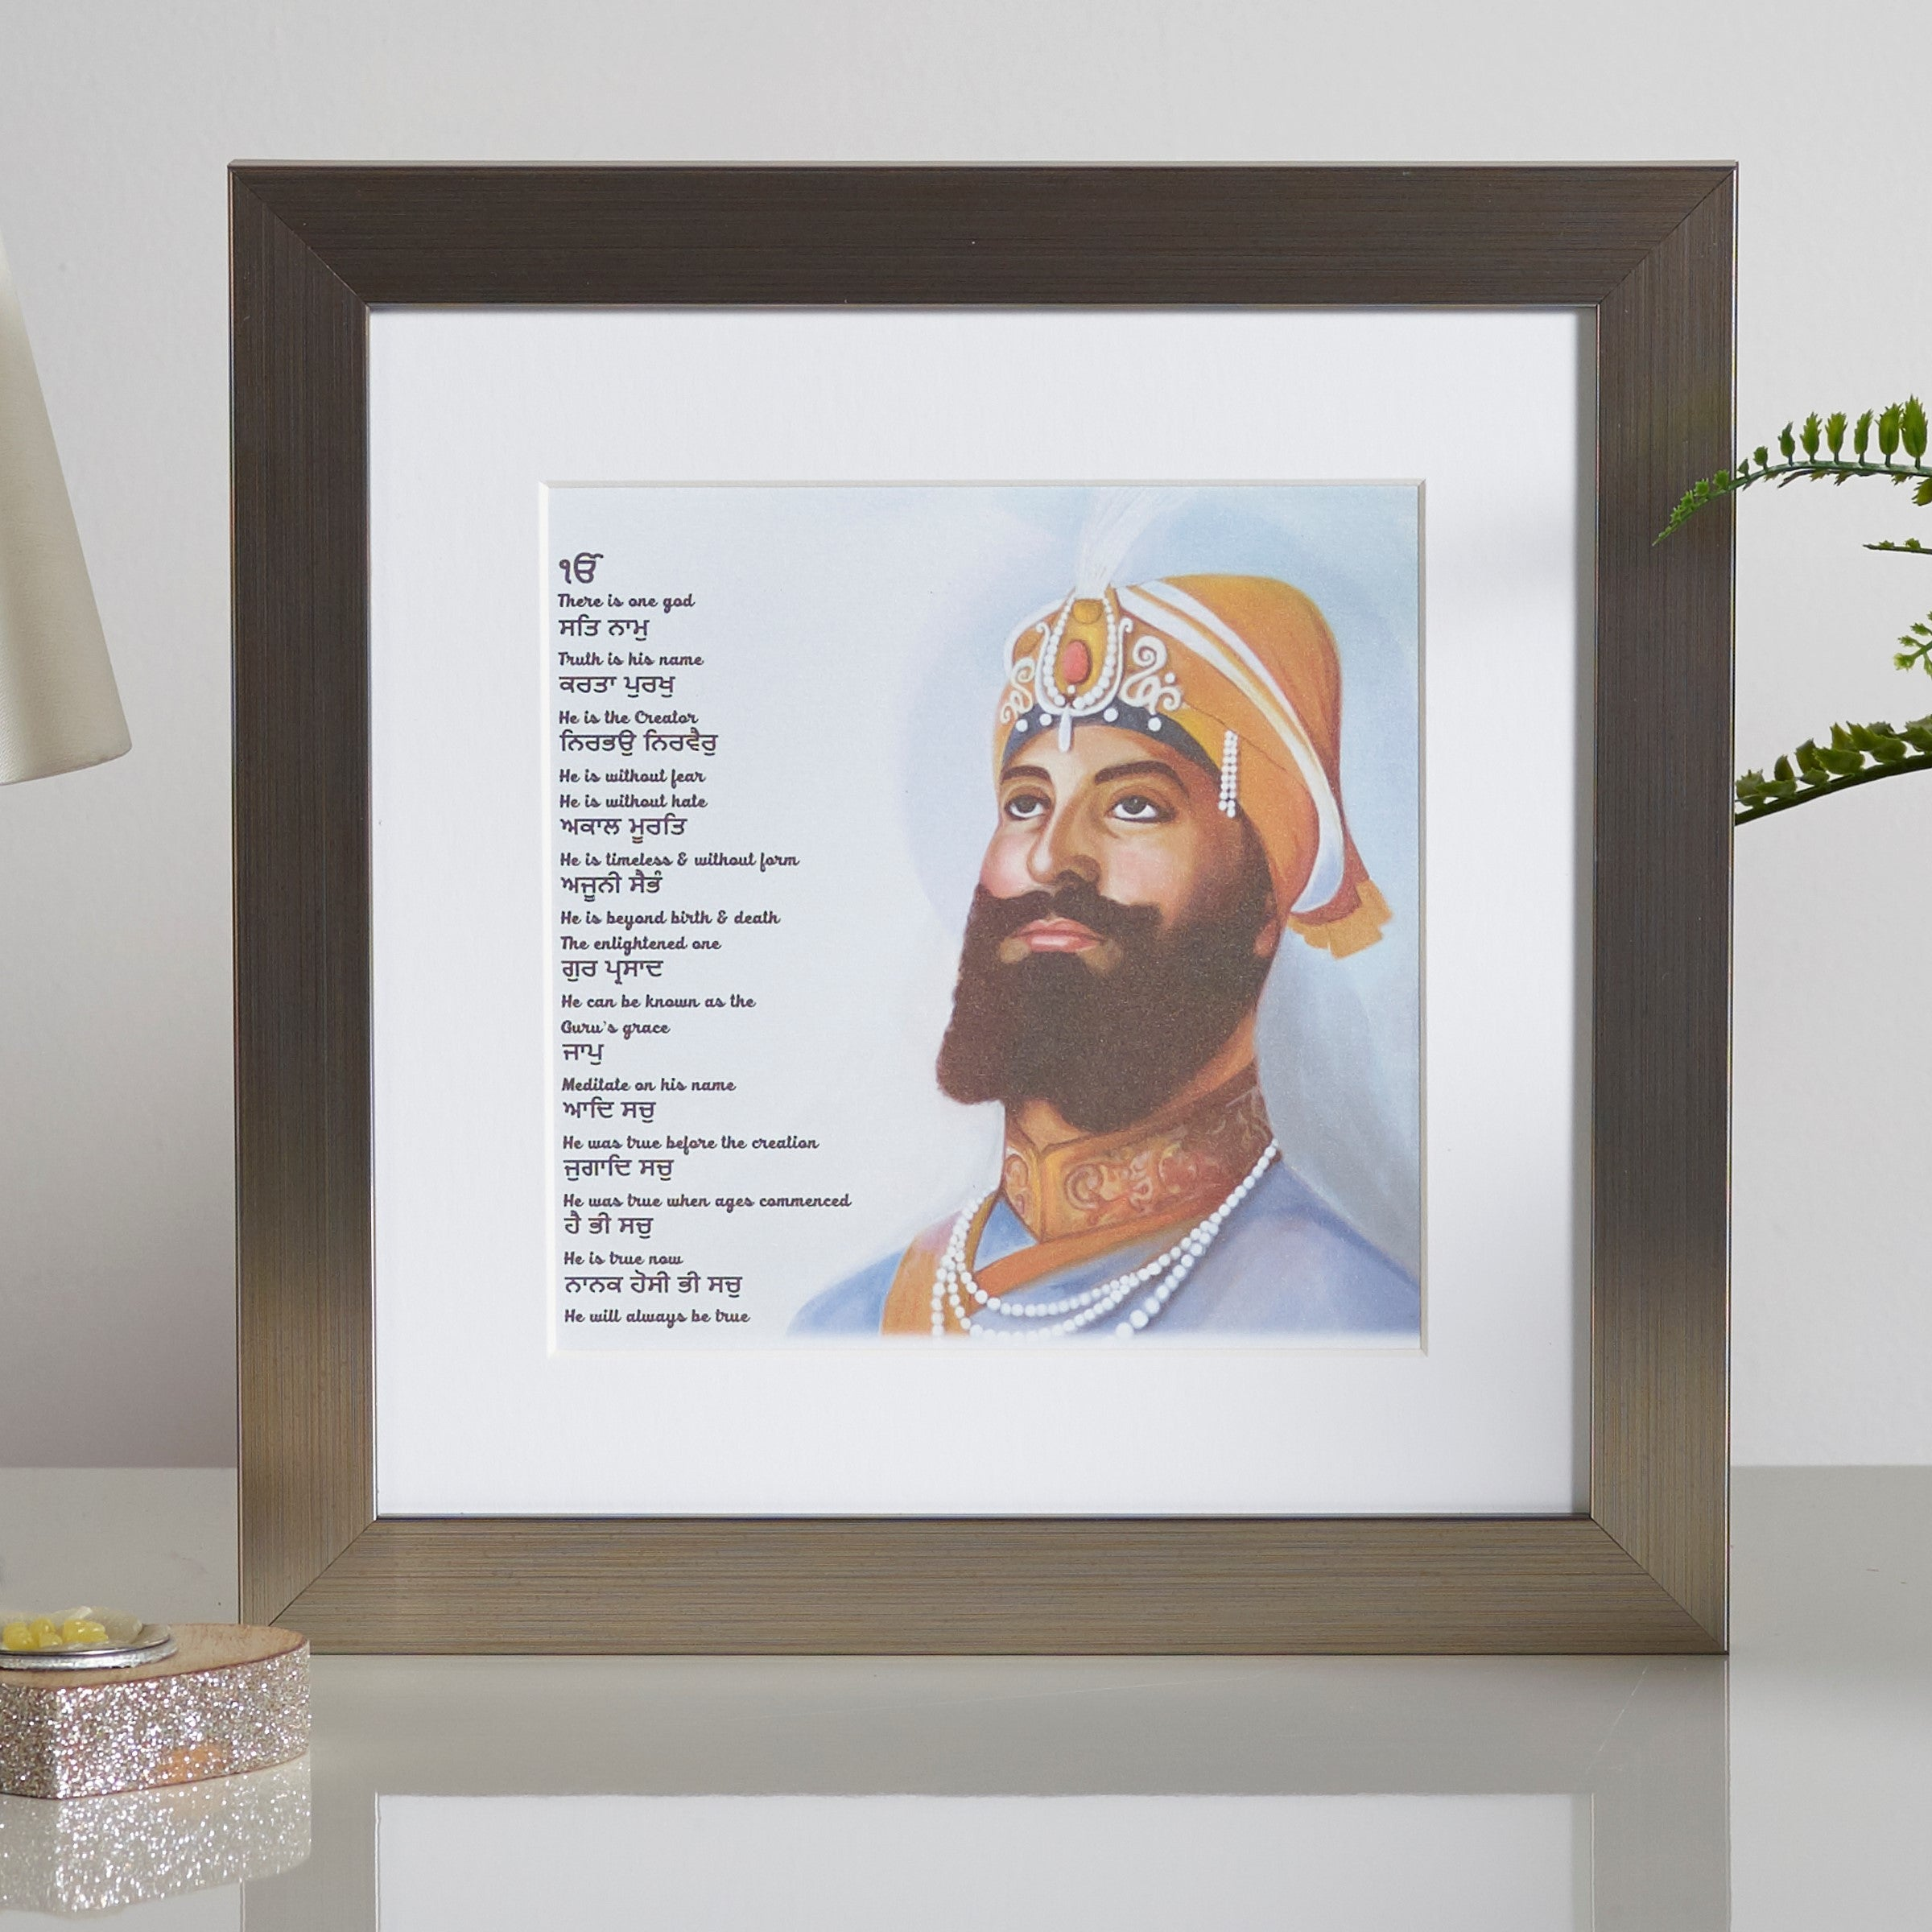 Guru Gobind Frame Including Mool Mantar in Punjbai With Translation